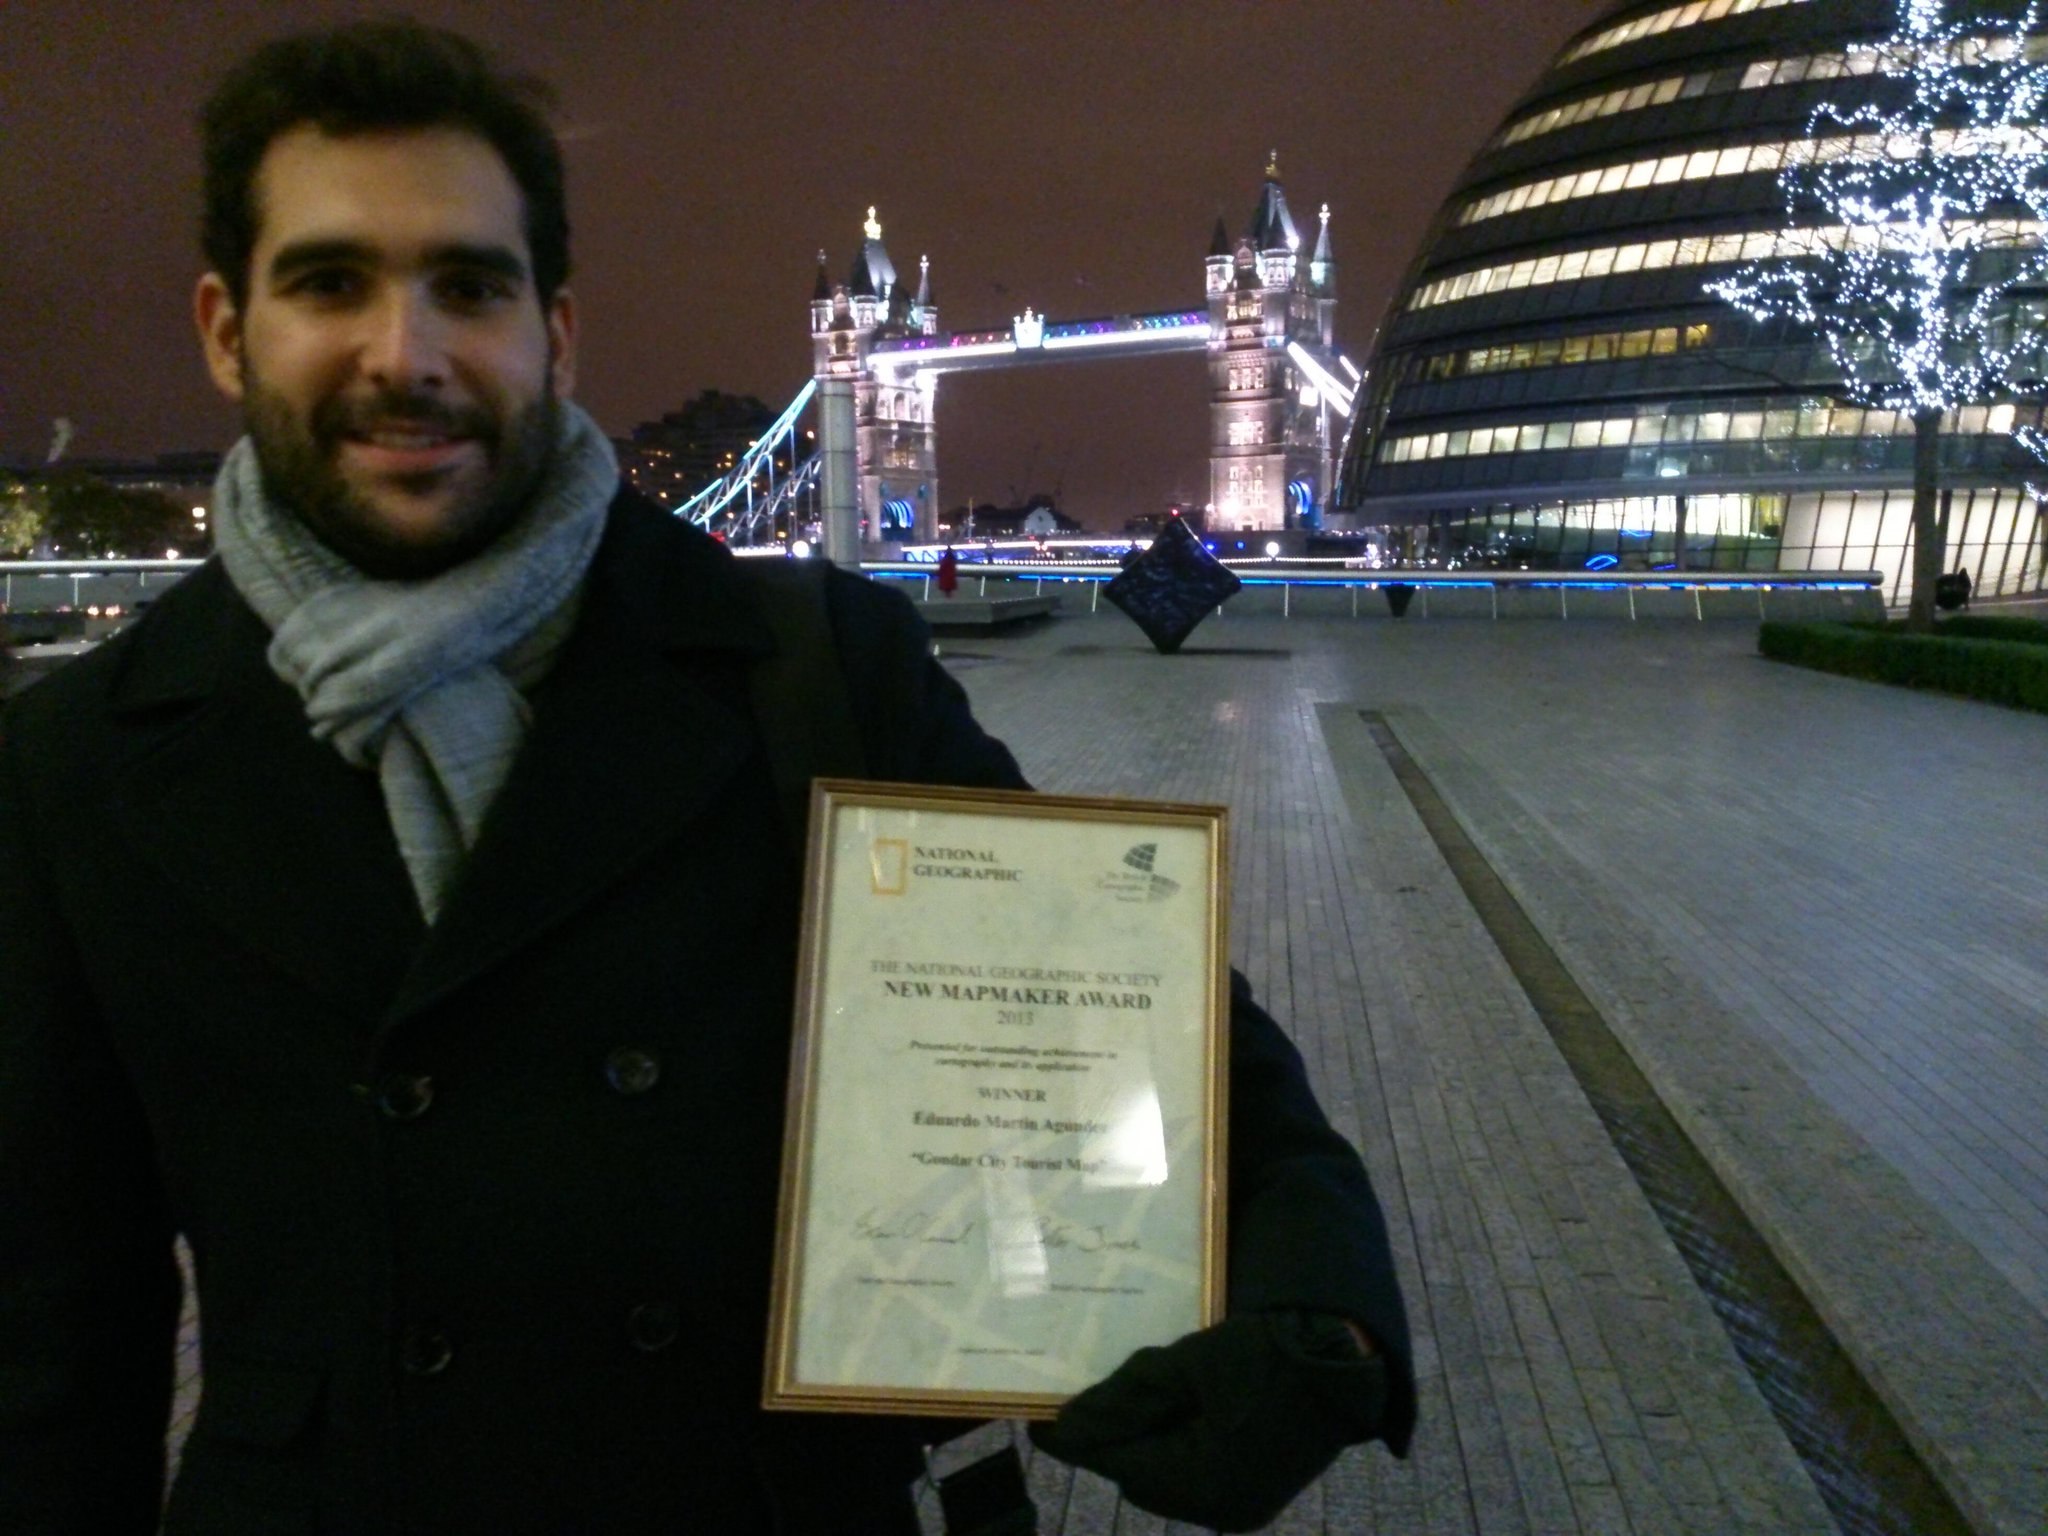 Eduardo Martin Ag�ndez with his certificate